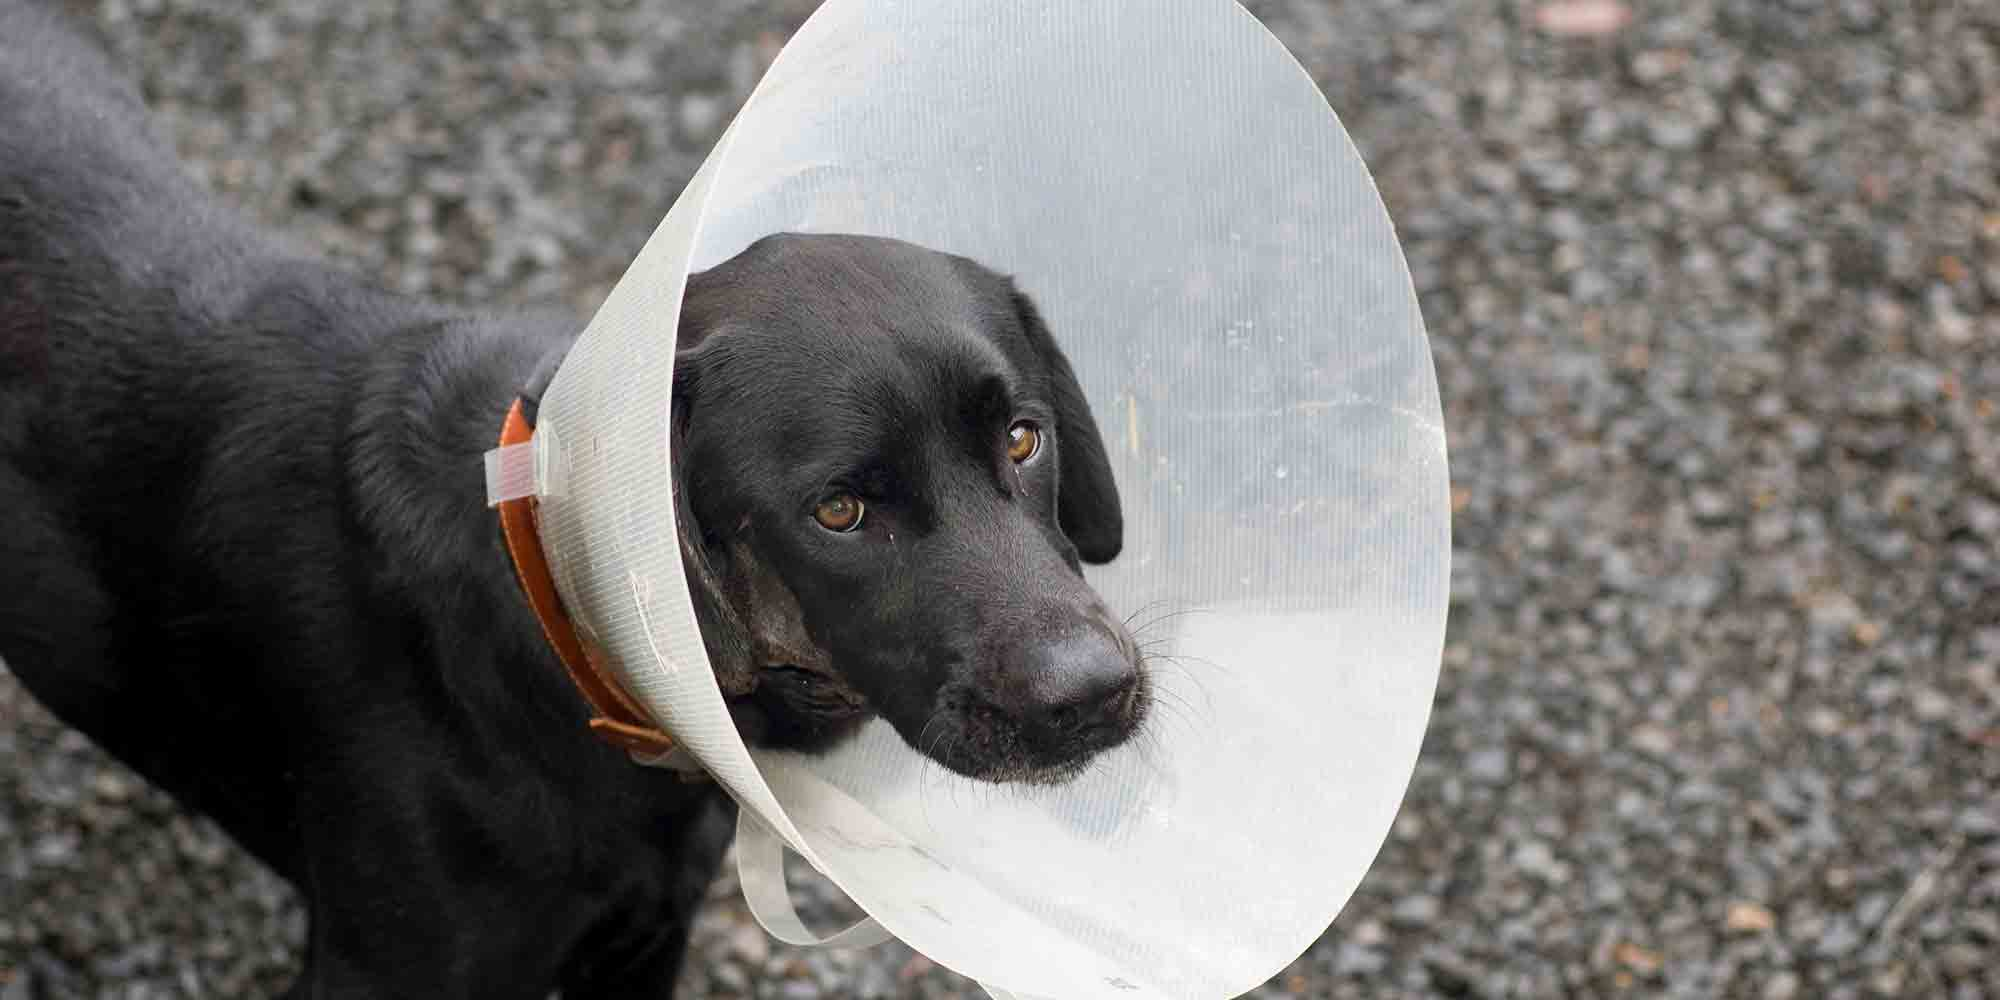 Black dog in cone